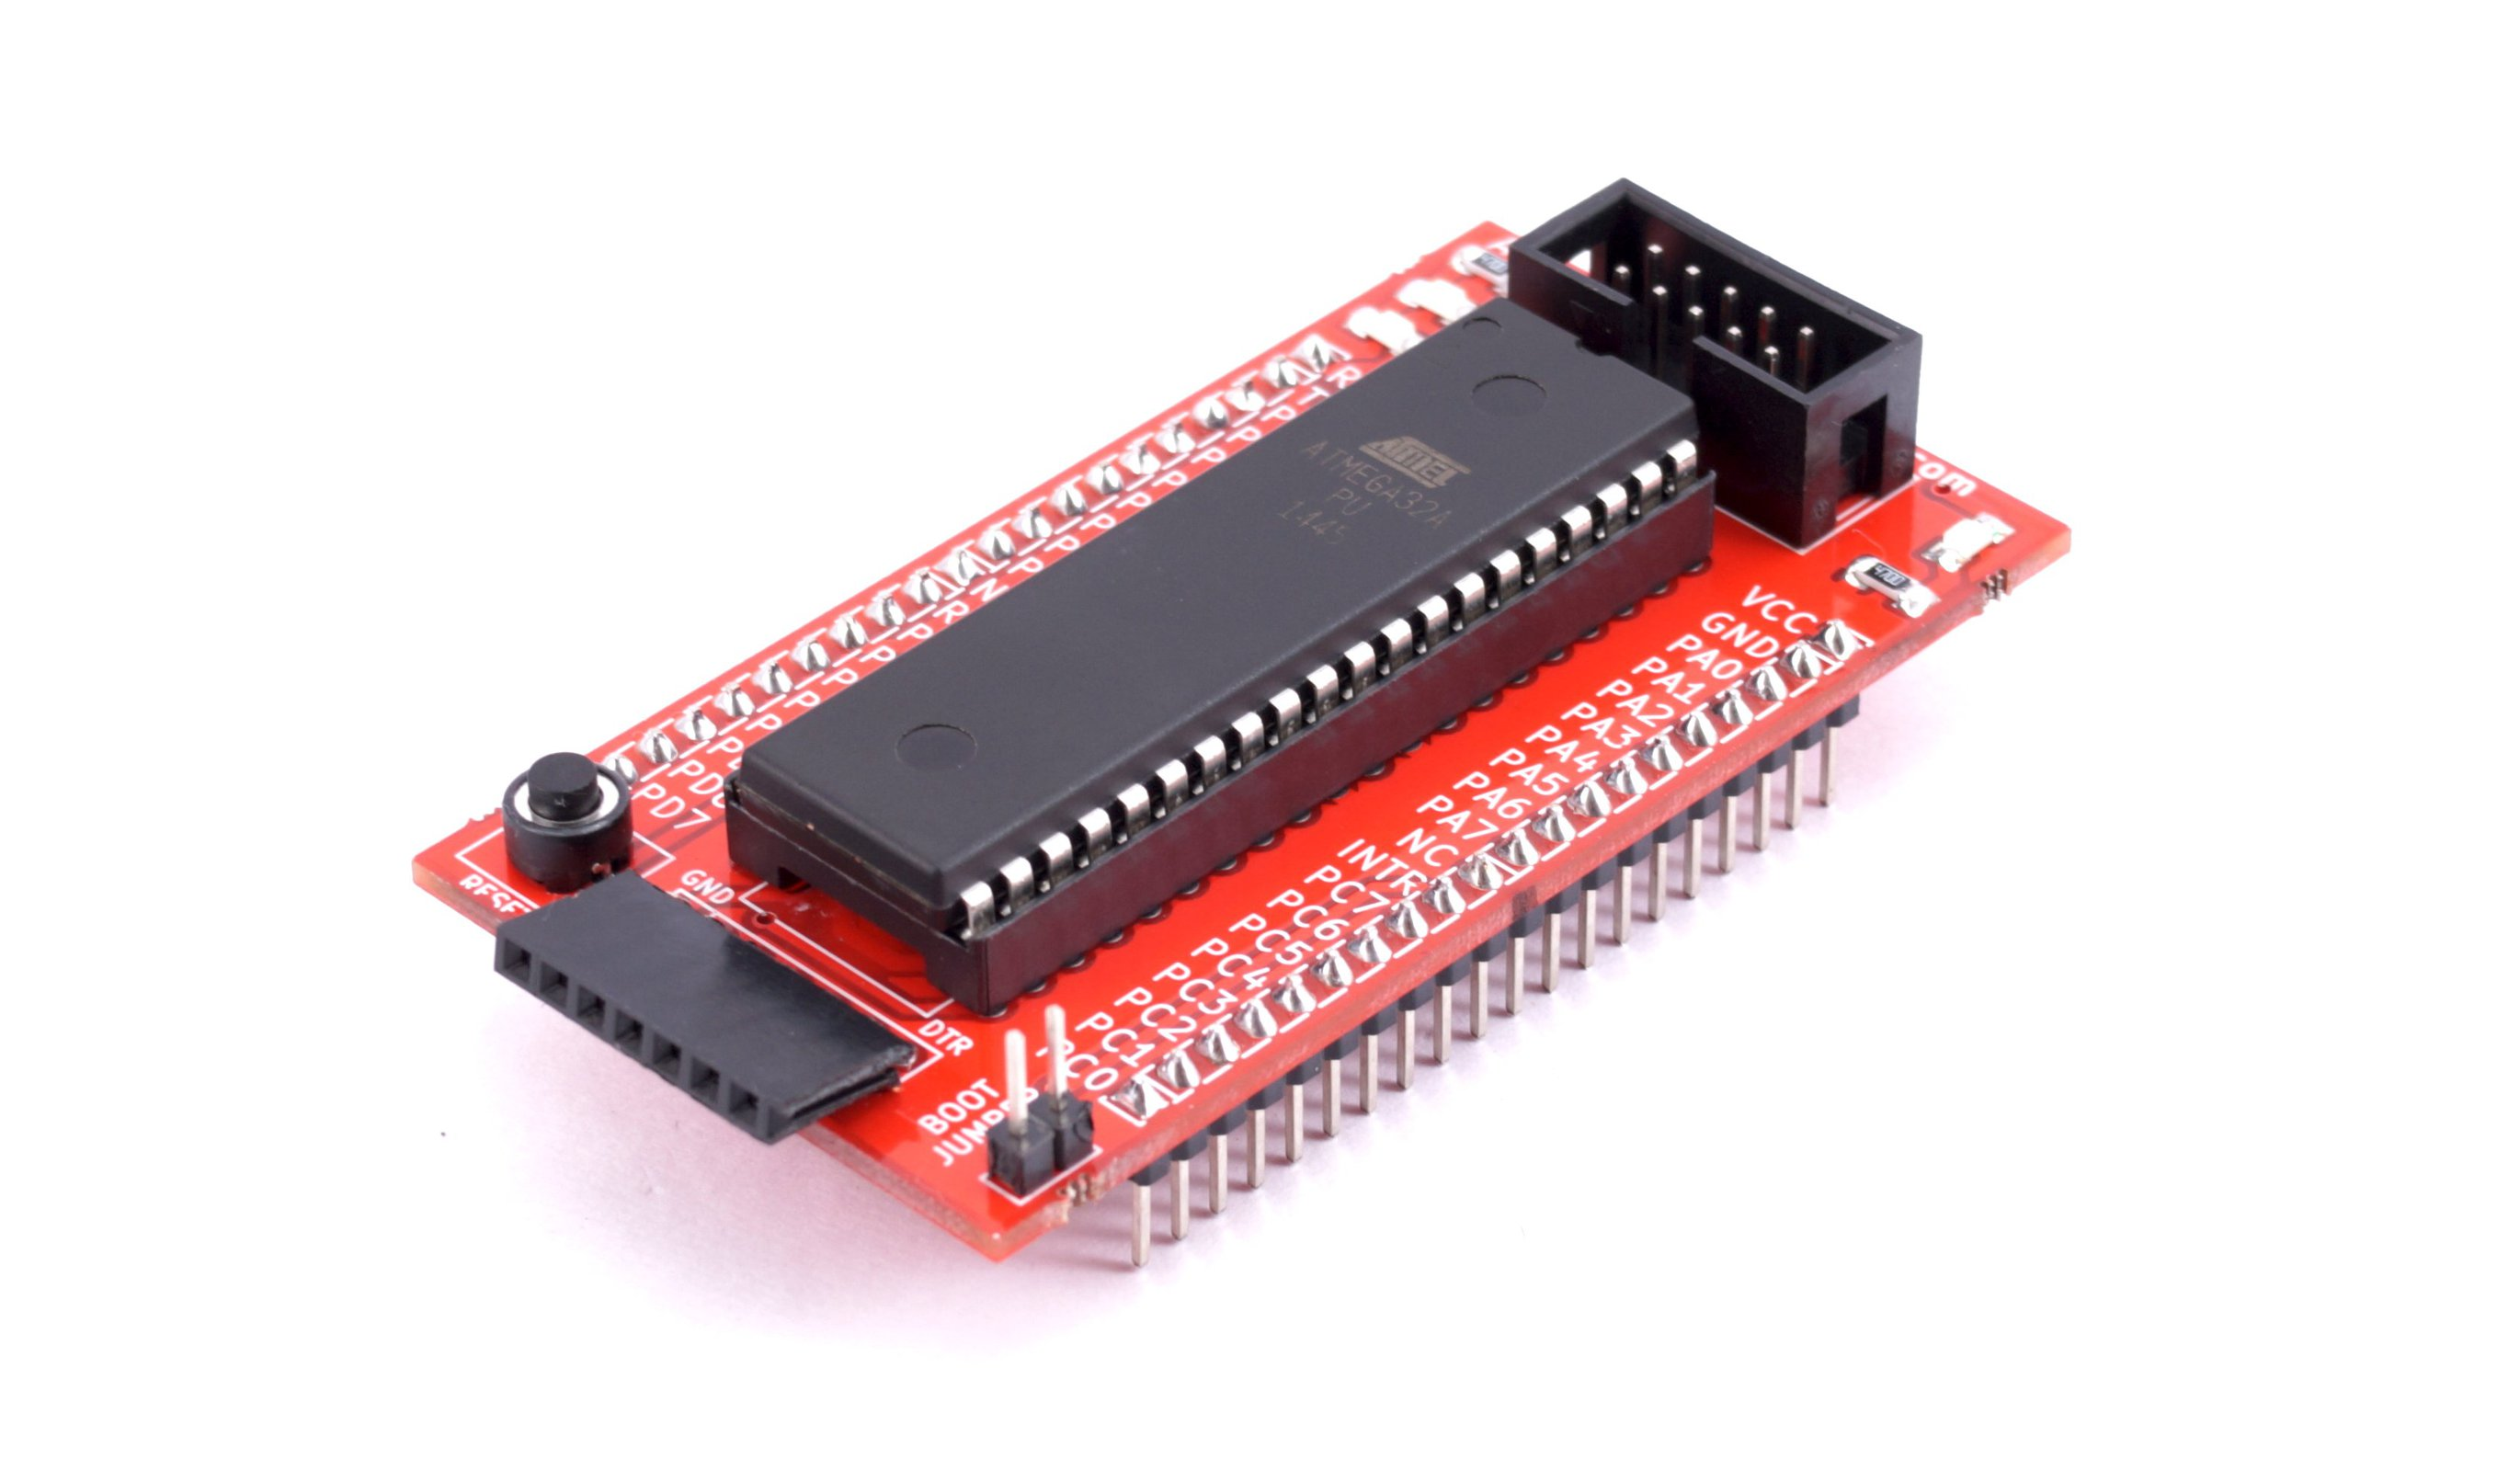 Avr 40 Pin Breakout Board With Atmega32 From Exploreembeddedcom On How To Configure Watchdog Timers Of Microcontroller Atmega16 3